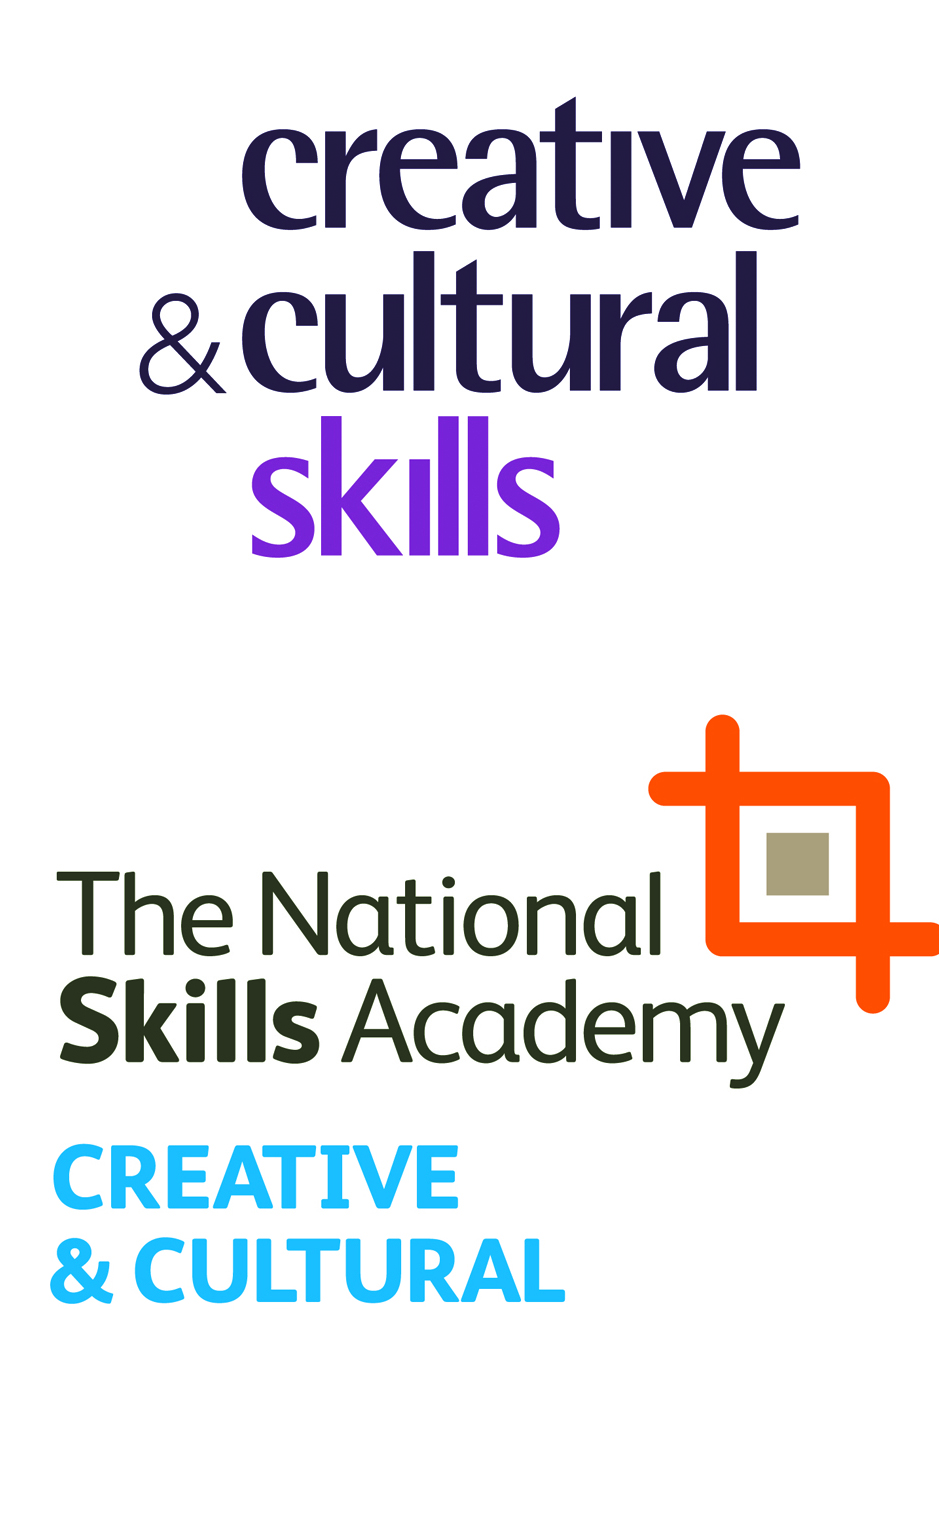 Creative and Cultural Skills and the National Skills Academy logos